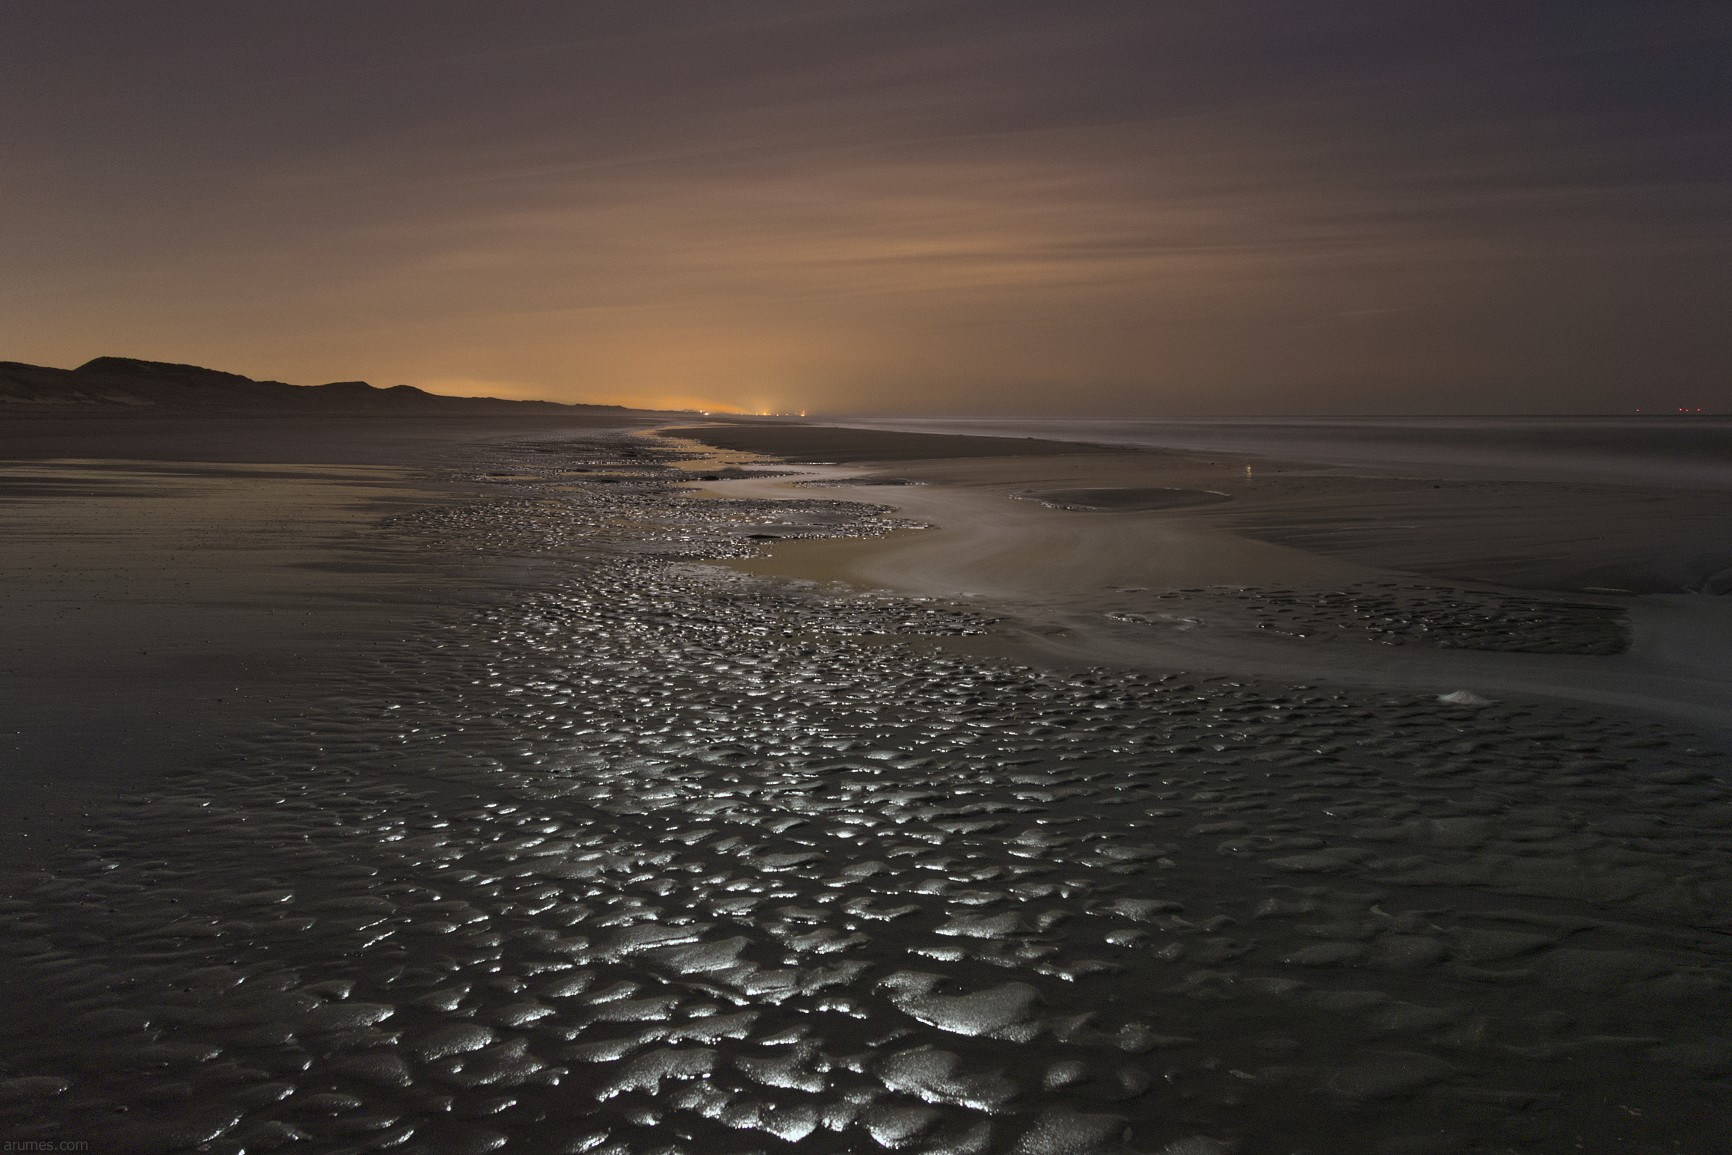 Beach wih incoming tide, artificial light on clouds and moon reflecting in wet sand